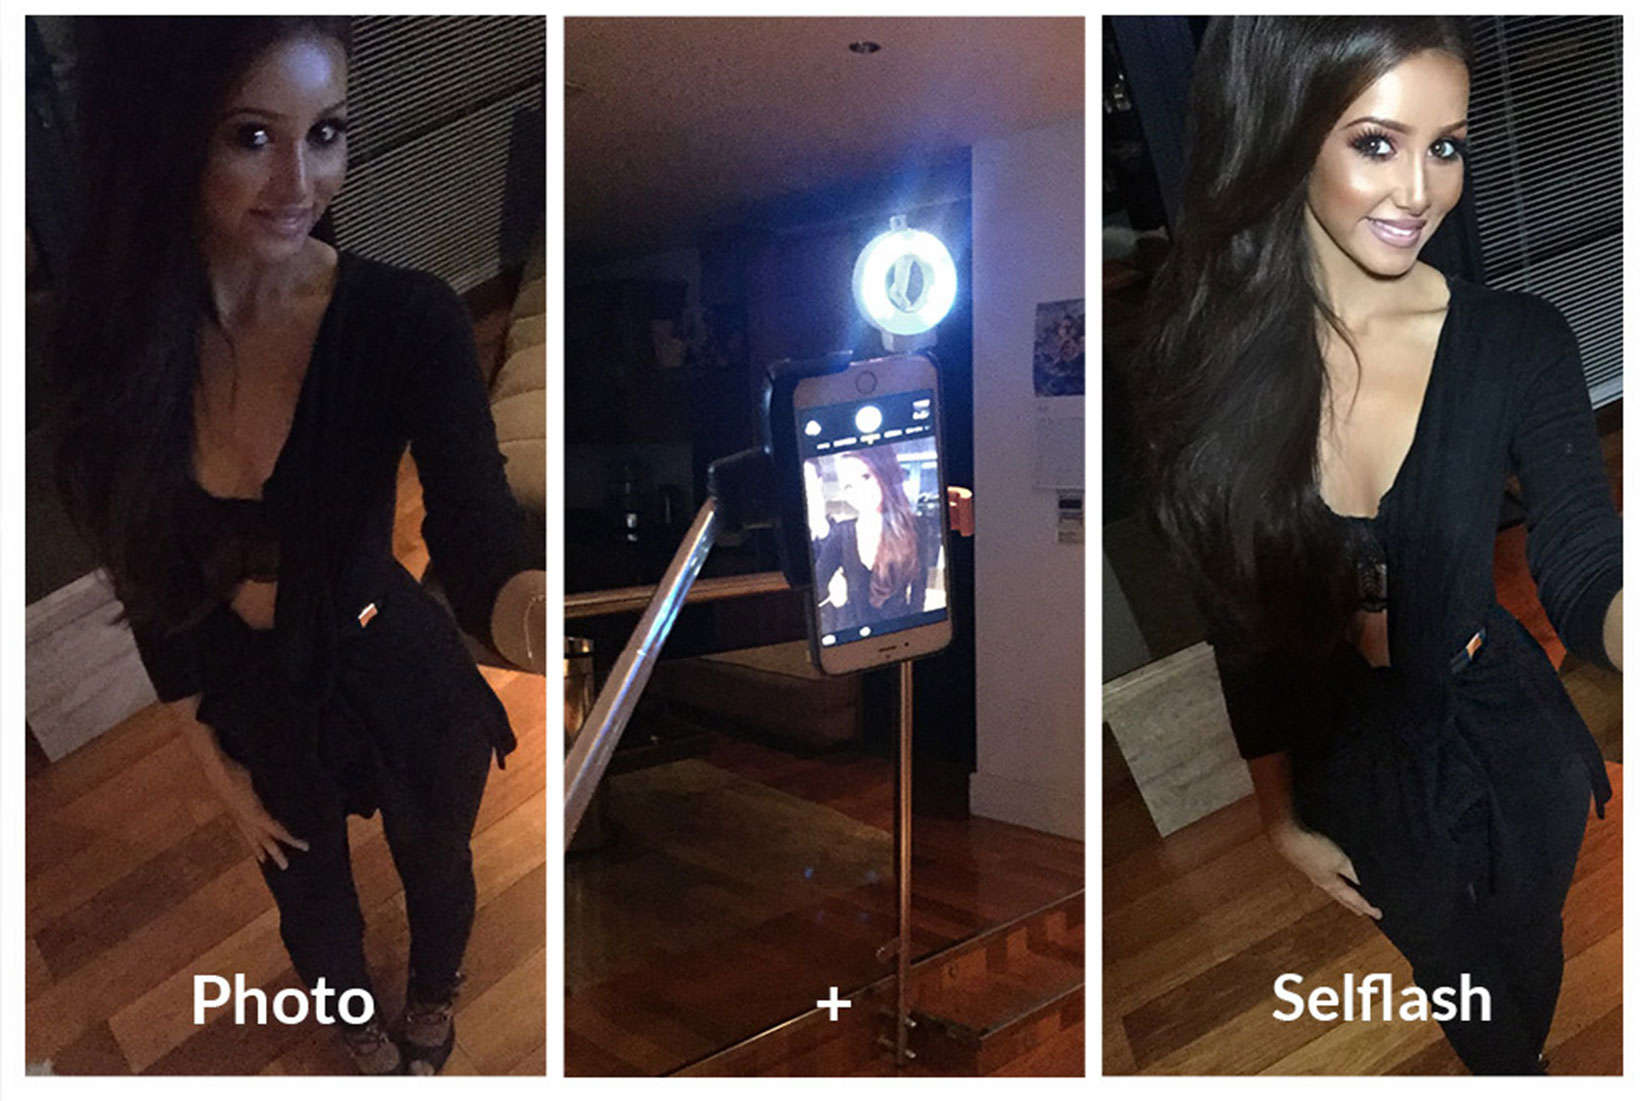 The SELFLASH can help us look our best in dark places.